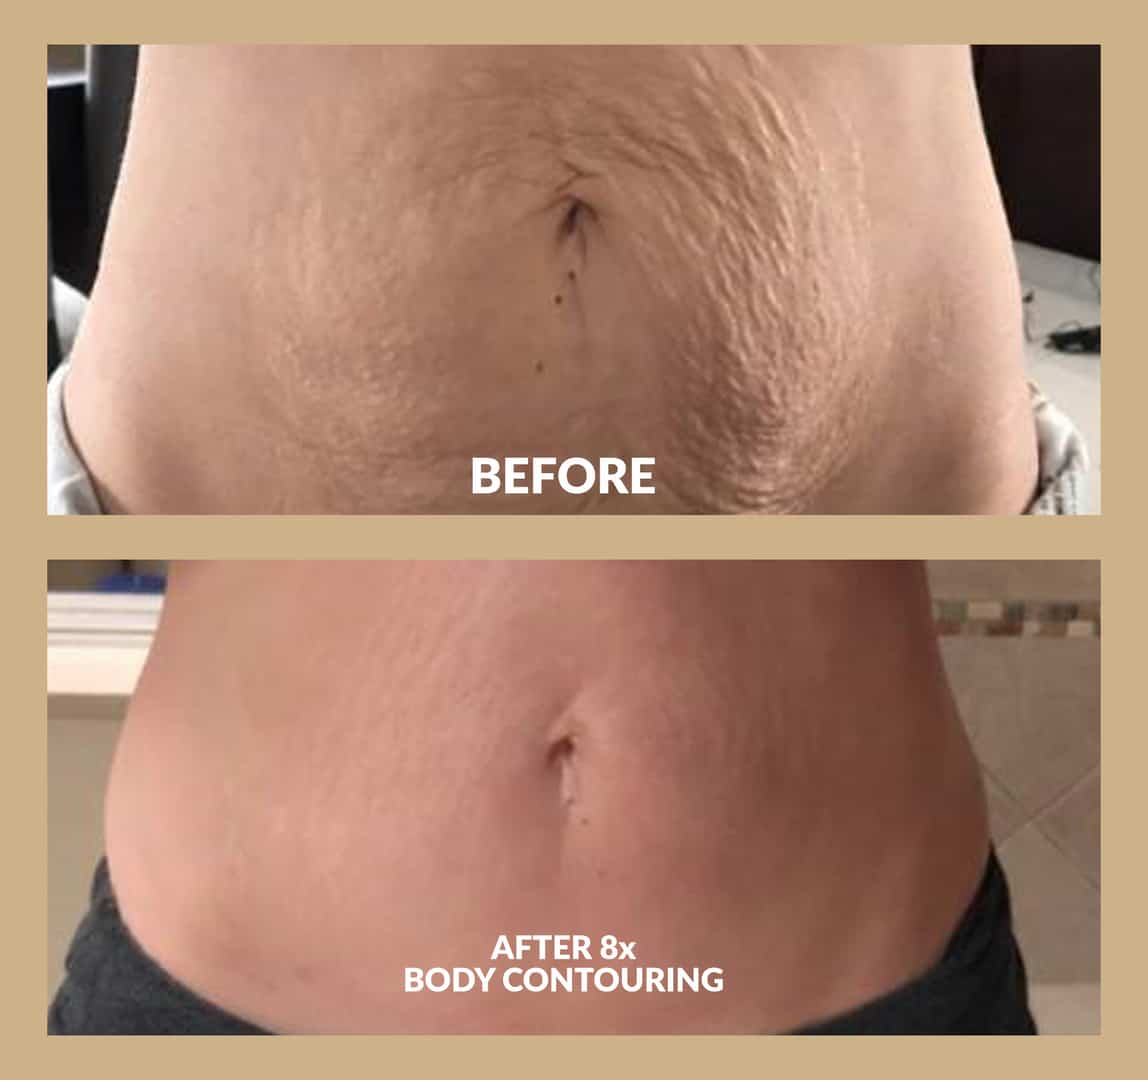 Two images of before and after skin tightening treatments